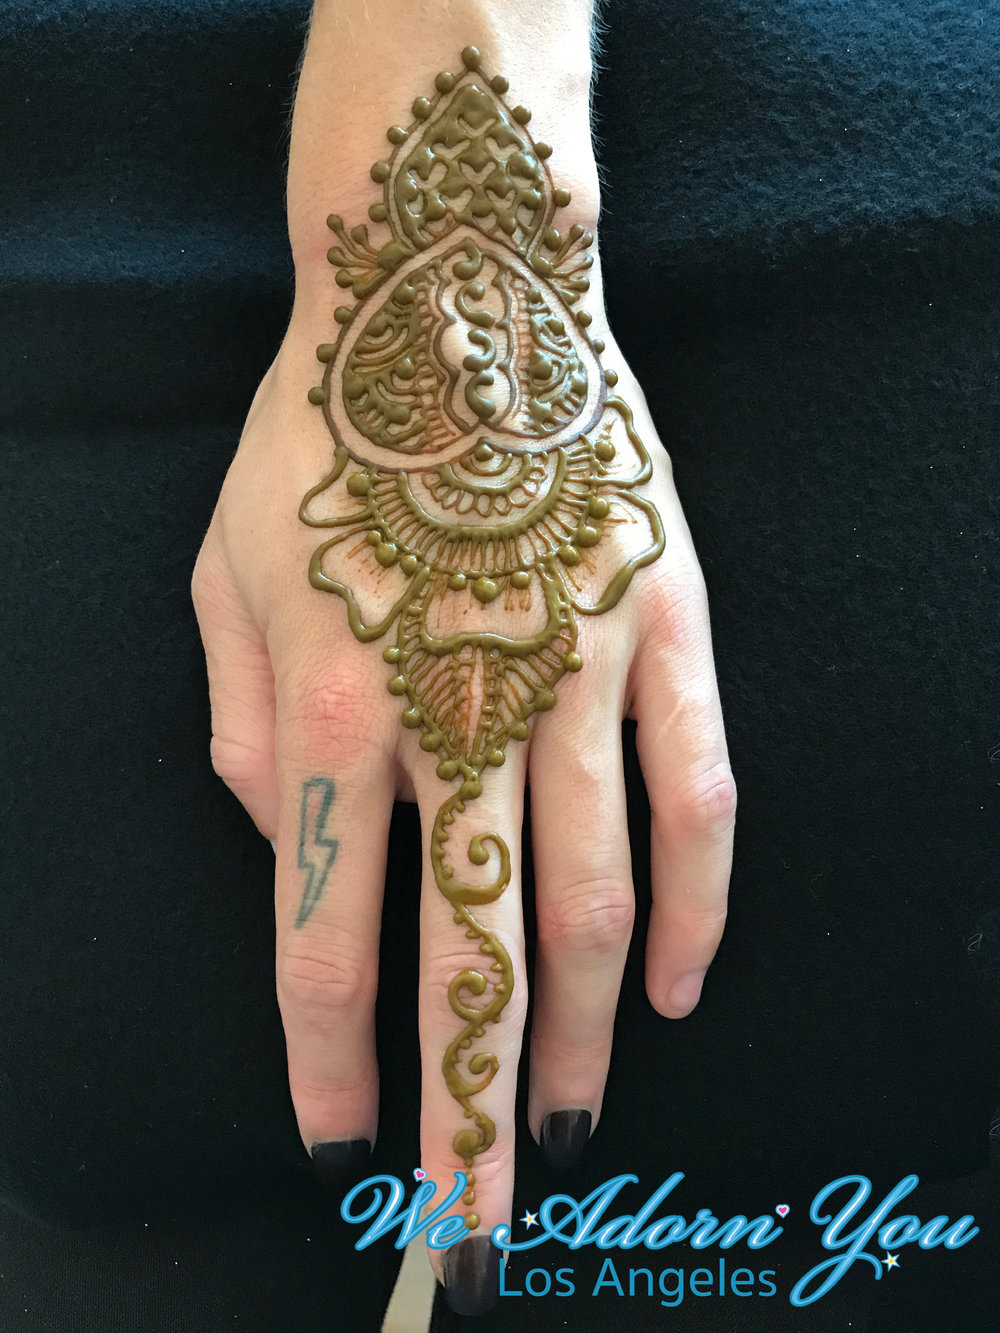 We Adorn You Los Angeles Henna Hand.jpg